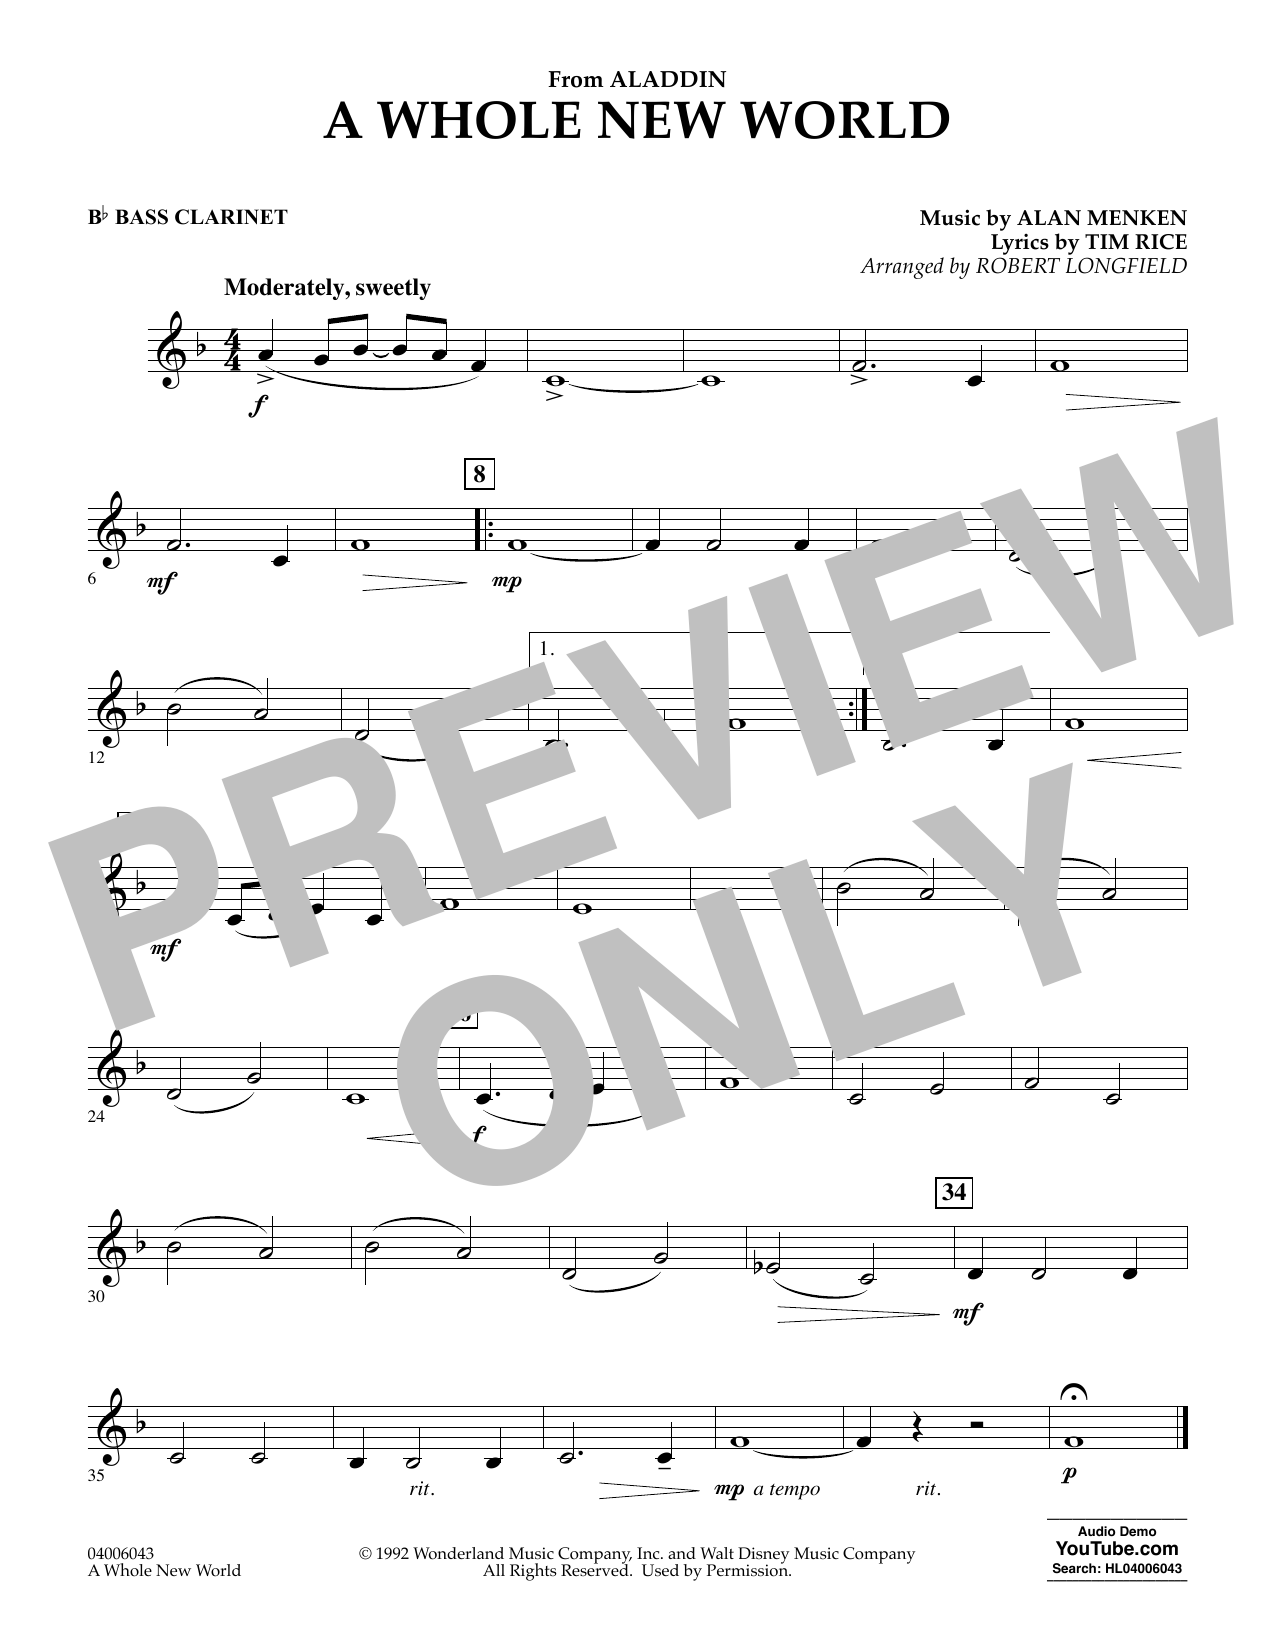 Download Alan Menken 'A Whole New World (from Aladdin) (arr. Robert Longfield) - Bb Bass Clarinet' Digital Sheet Music Notes & Chords and start playing in minutes